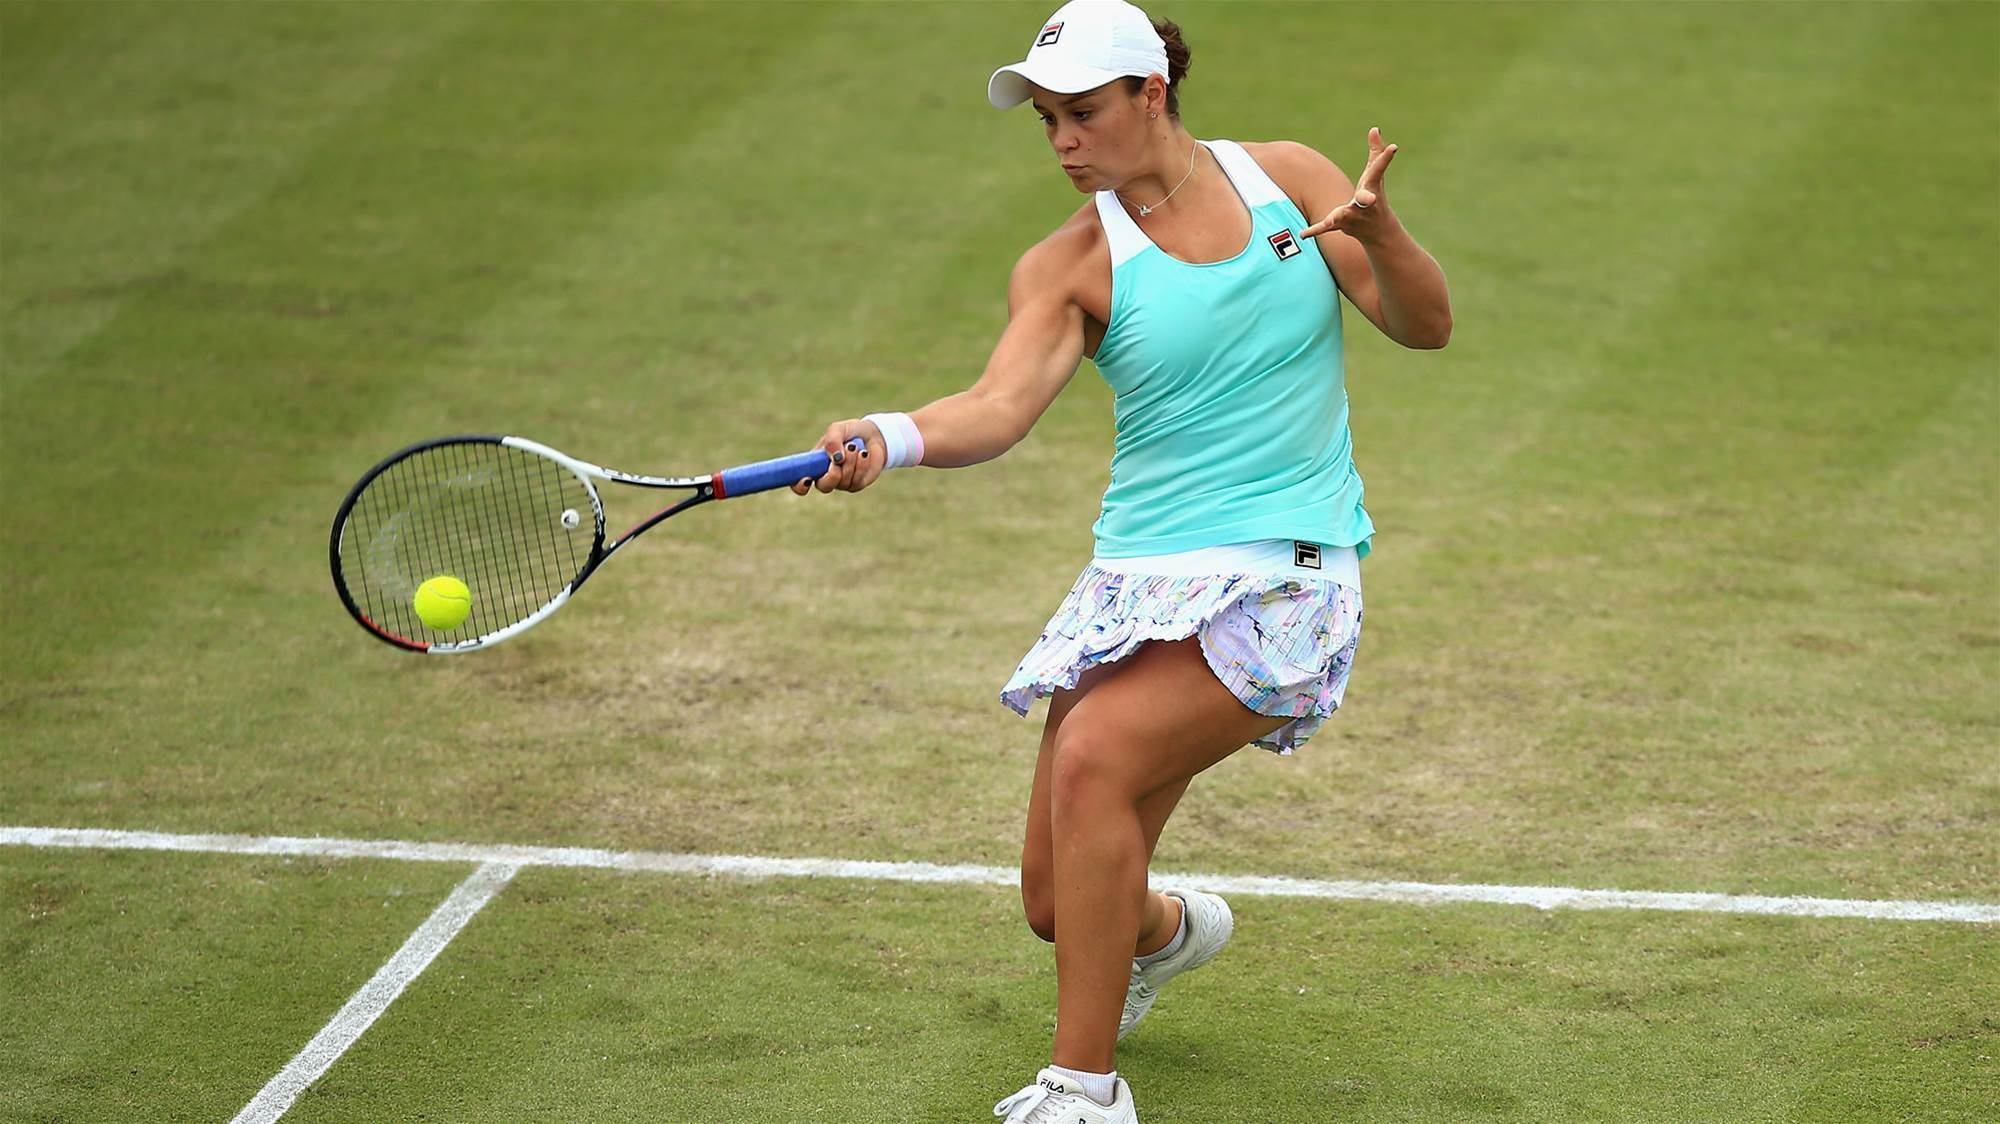 Mixed results on grass for Aussie women